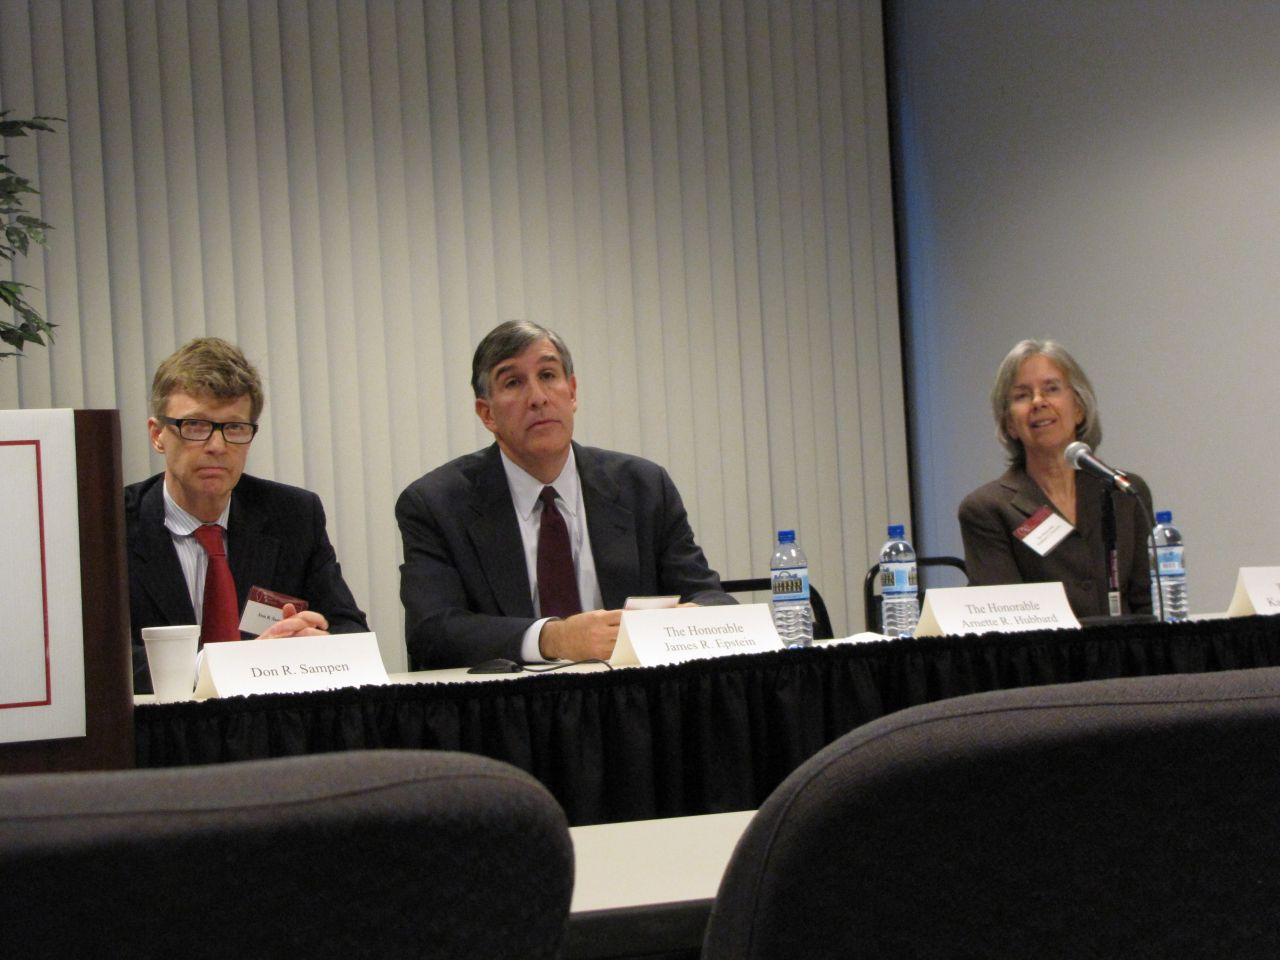 Candidates Don R. Sampen, James R. Epstein and Kathleen G. Kennedy